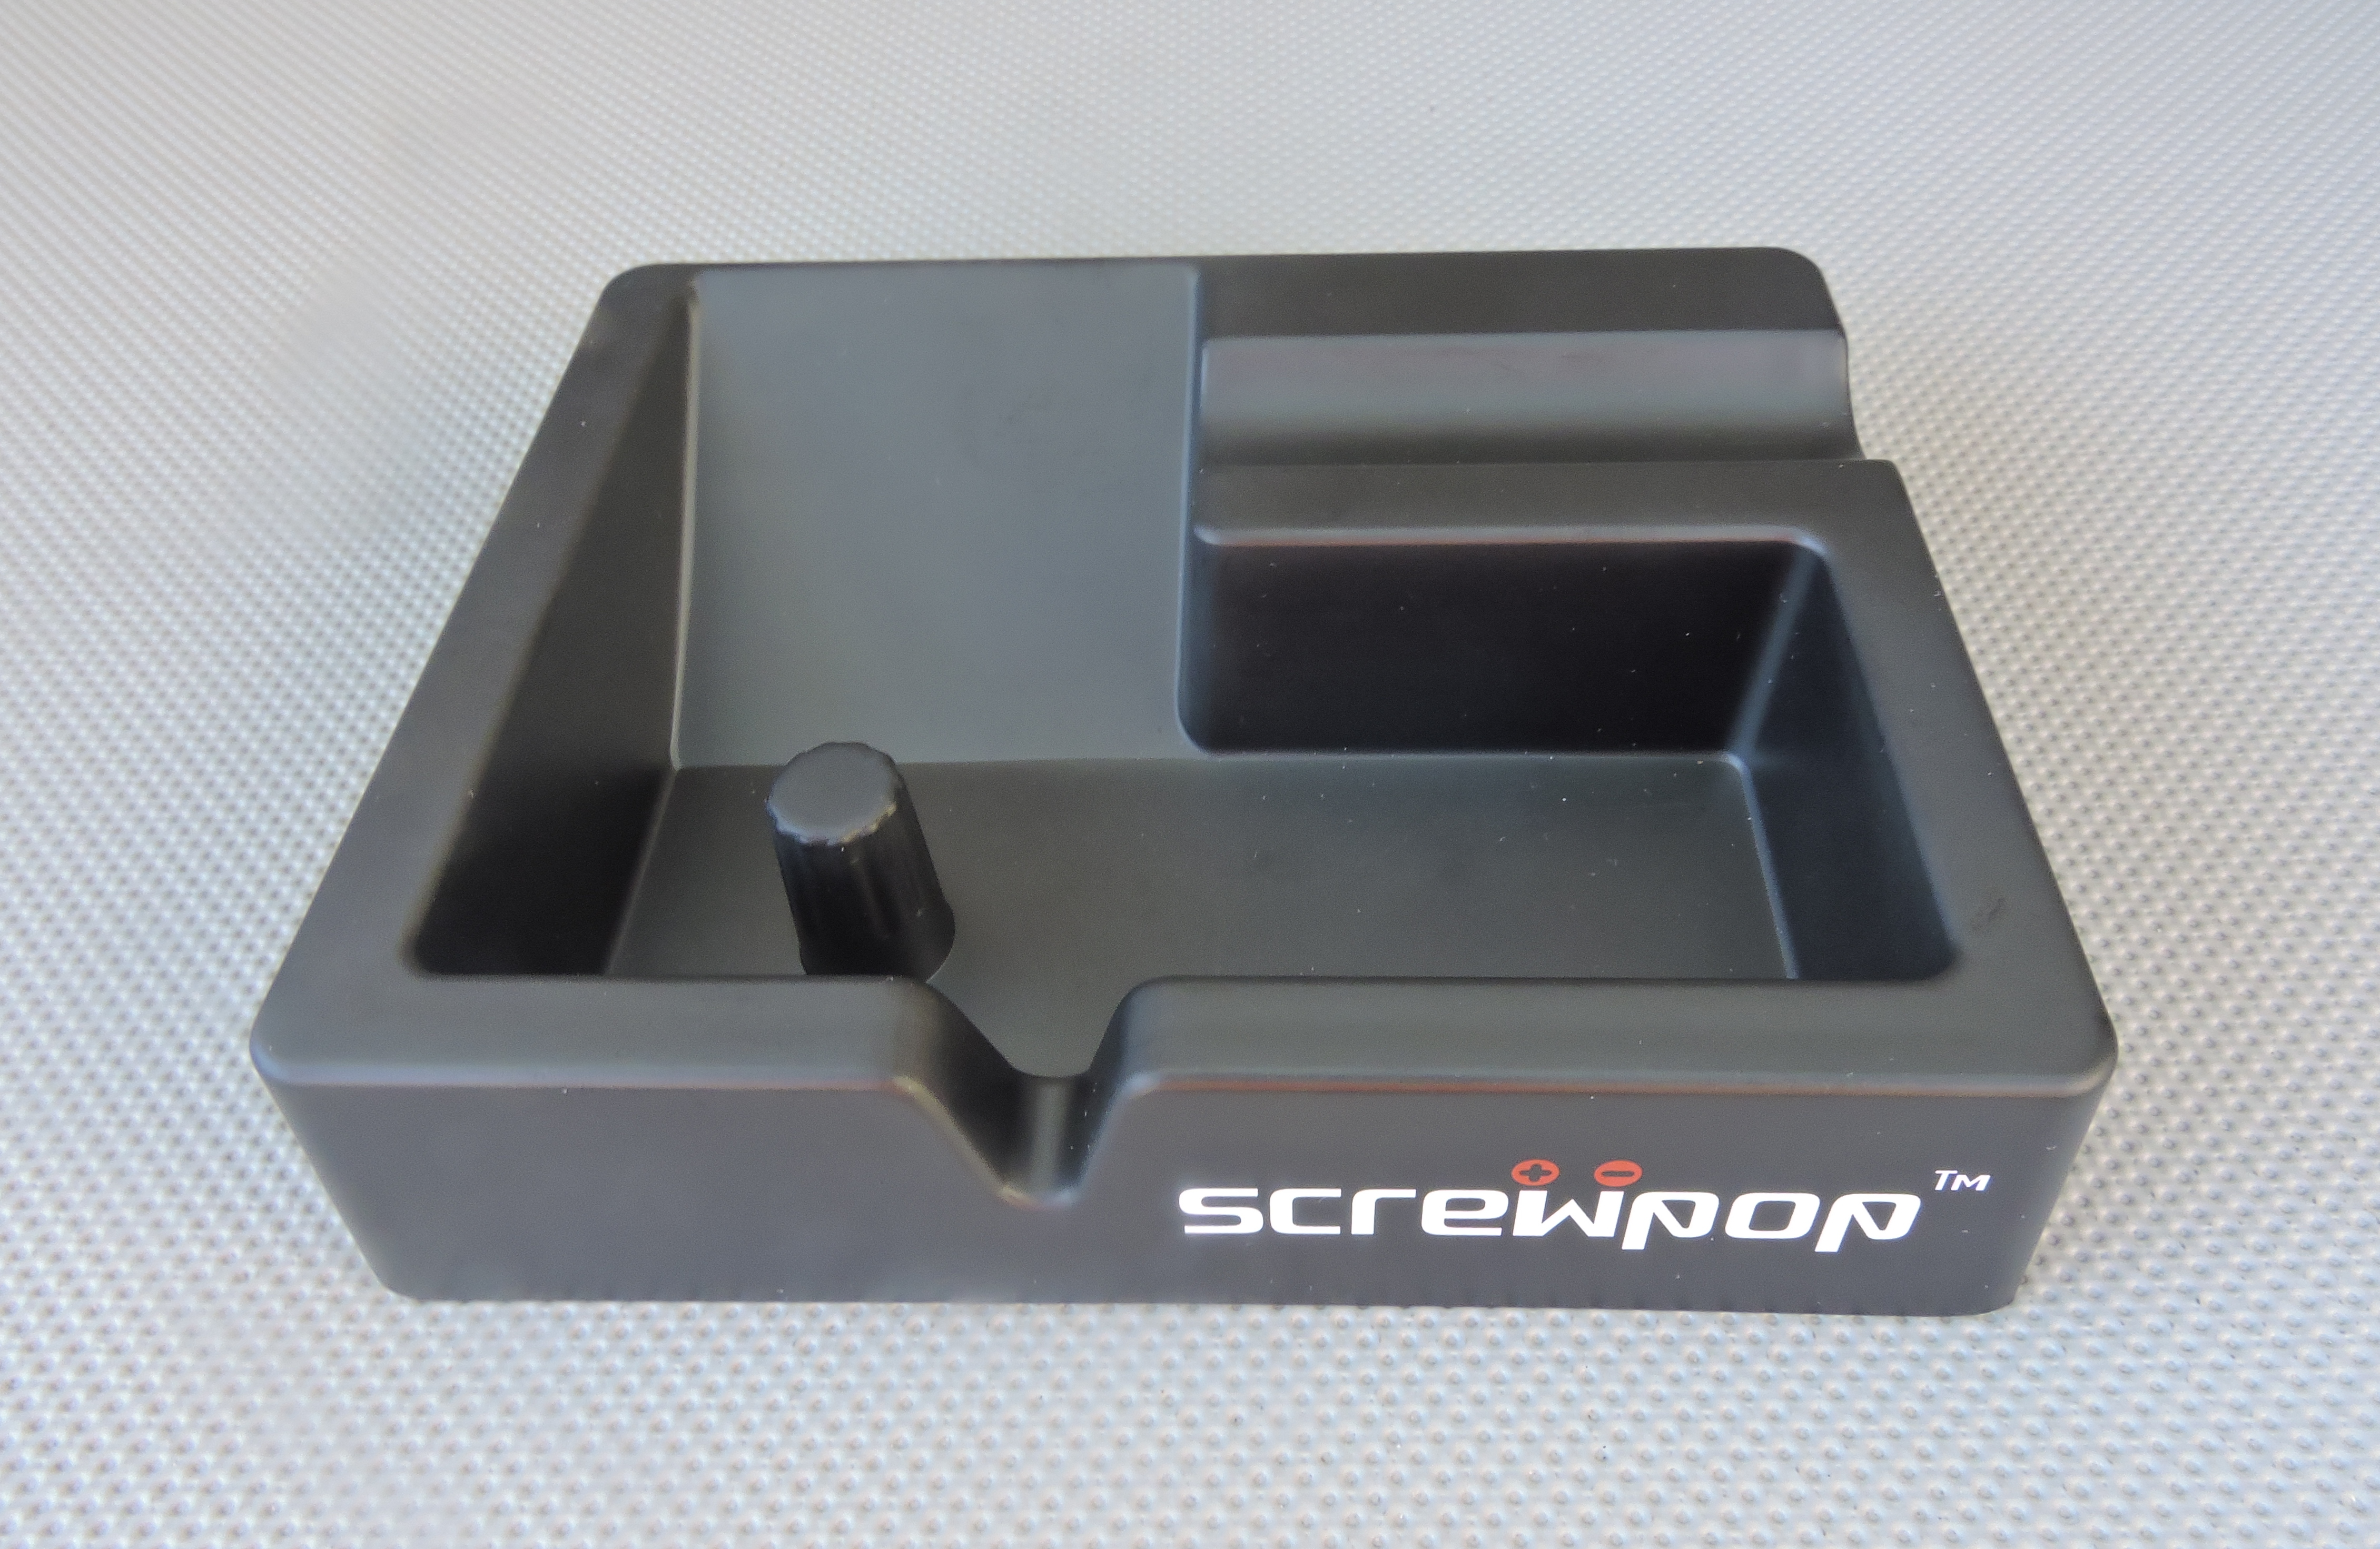 Accessory Review: Screwpop Ashtray